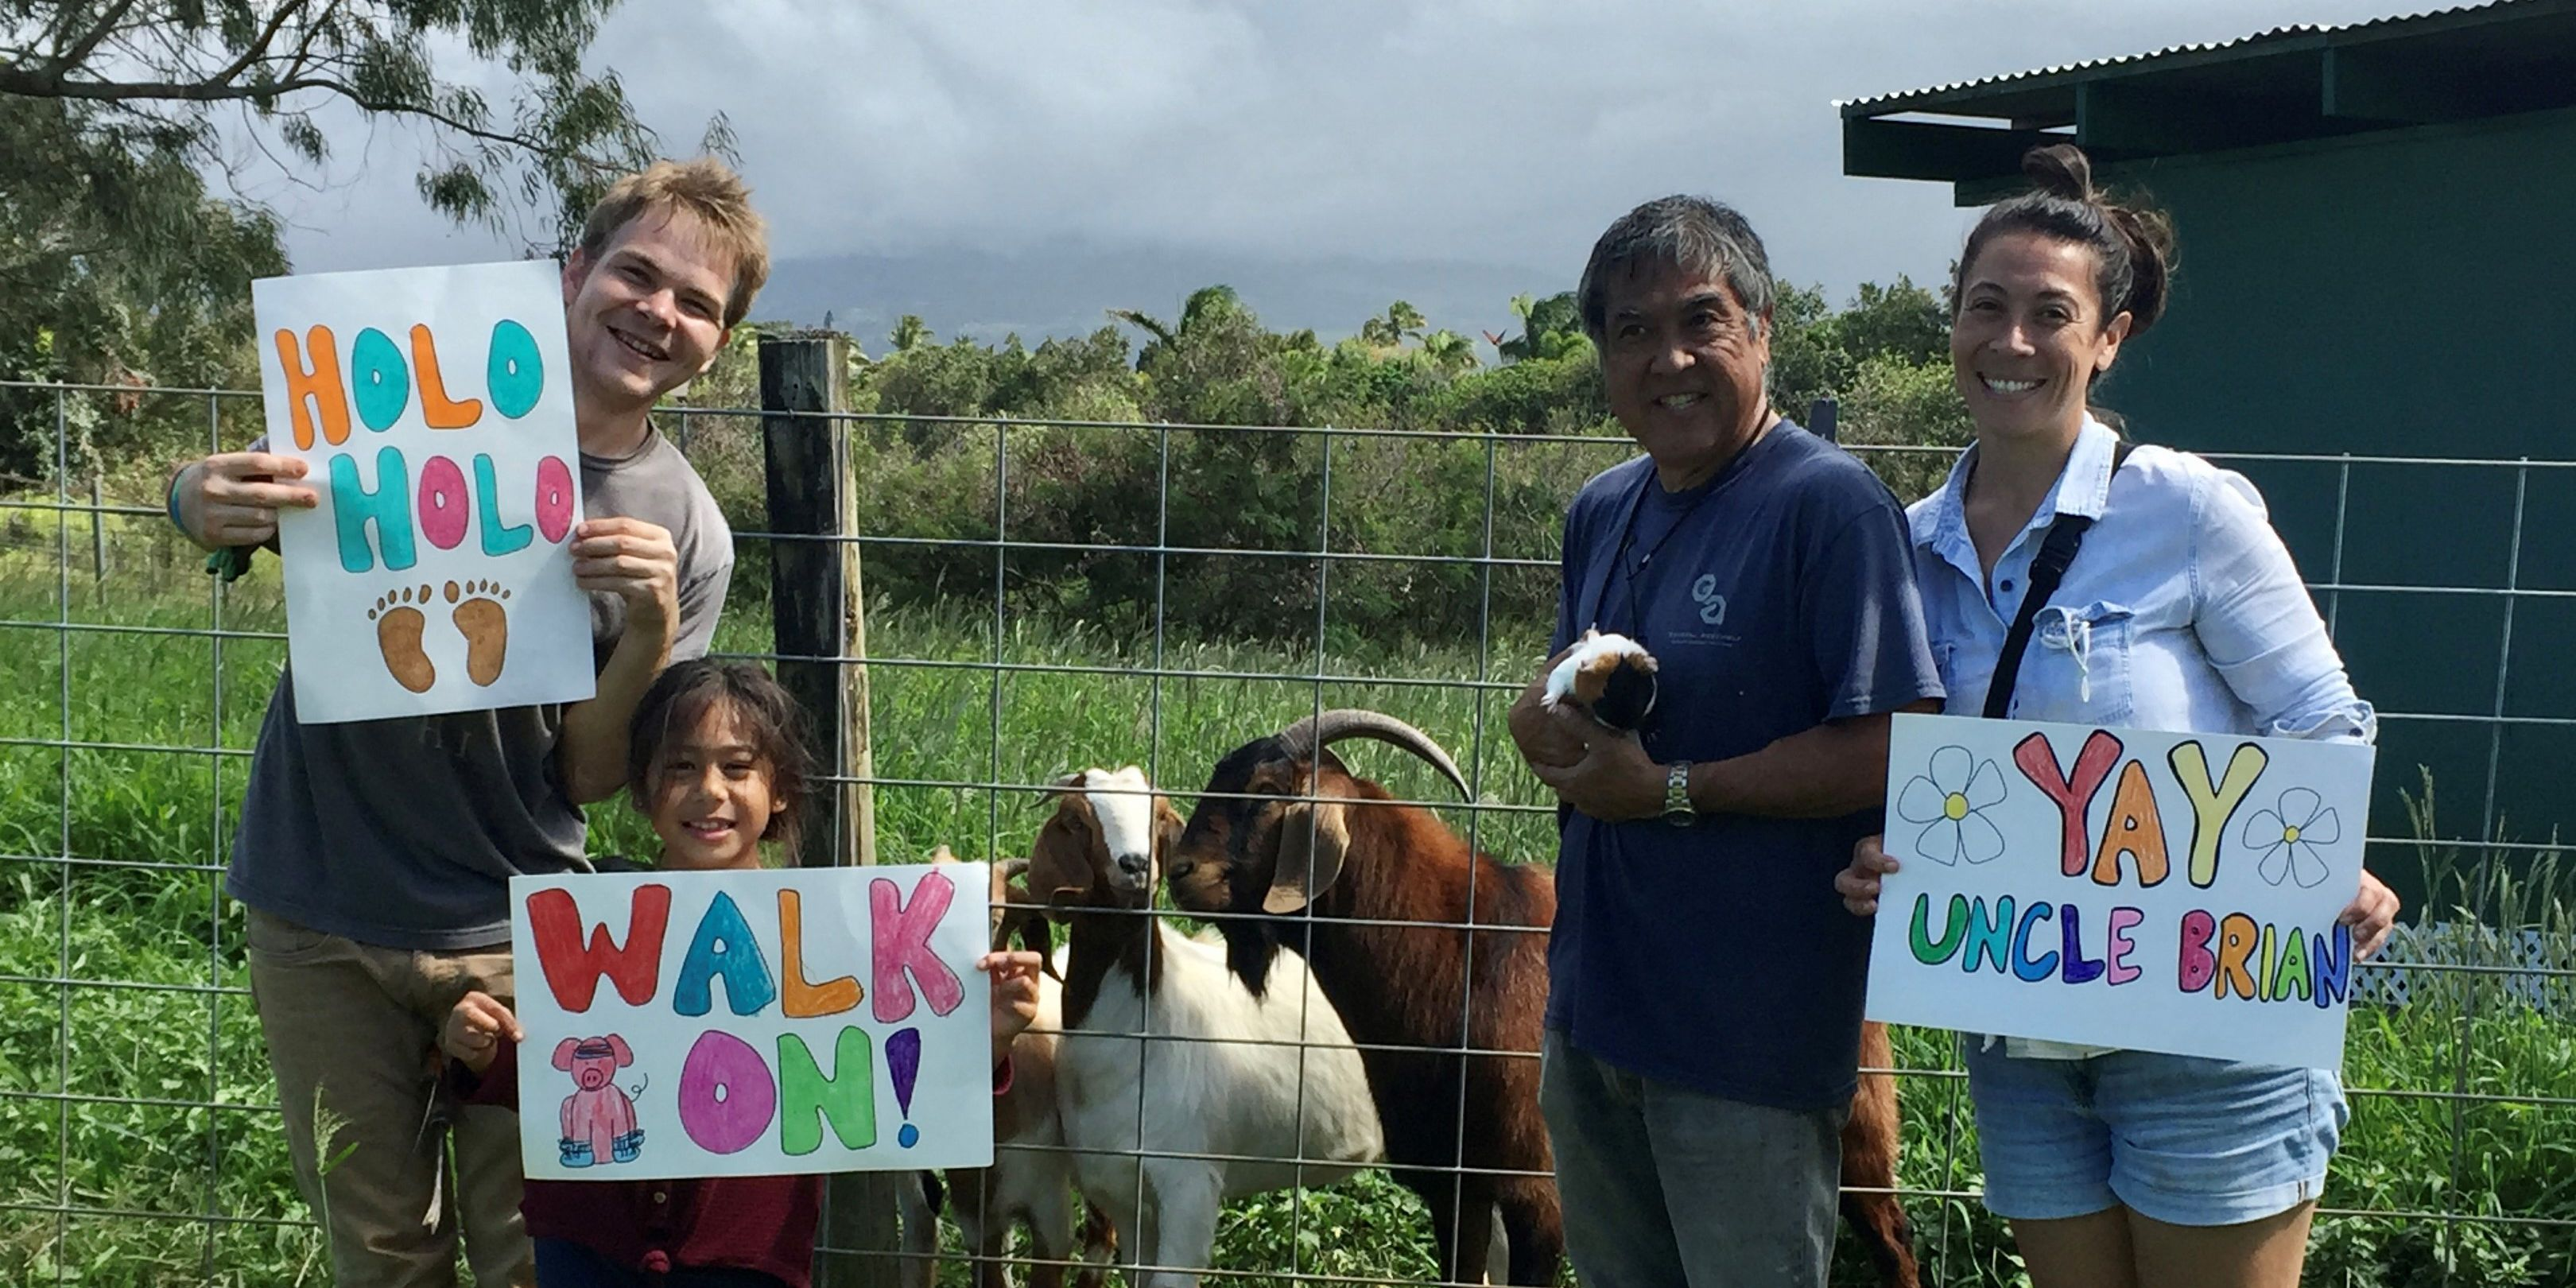 A Maui man is walking 165 miles to raise money for charity. He says it's worth every step.